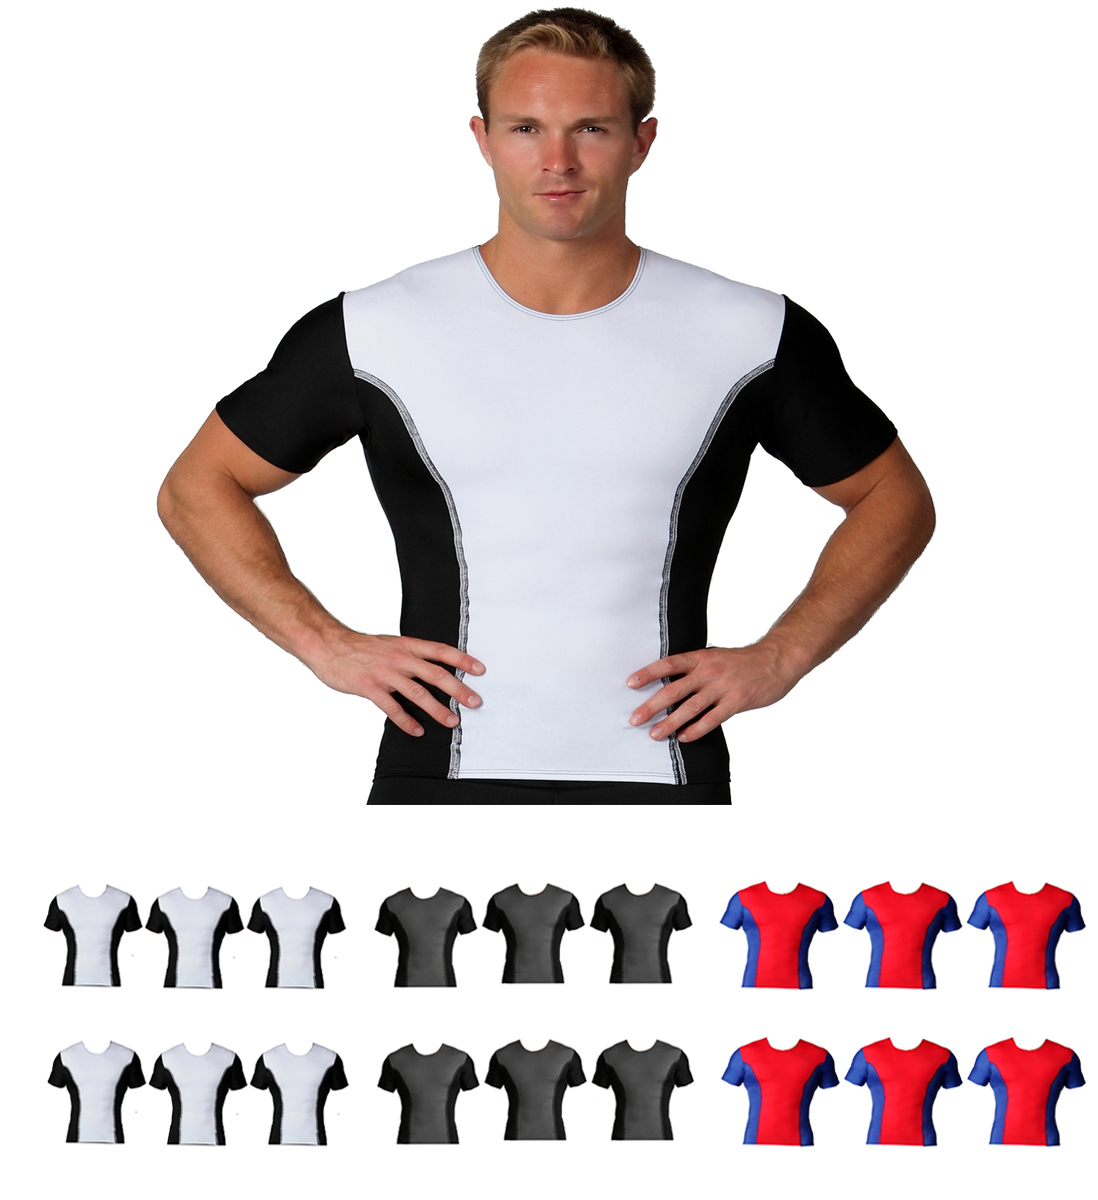 6 Pack IS PRO Activewear Two-tone crew-neck w/contrast stitching TA00TT6